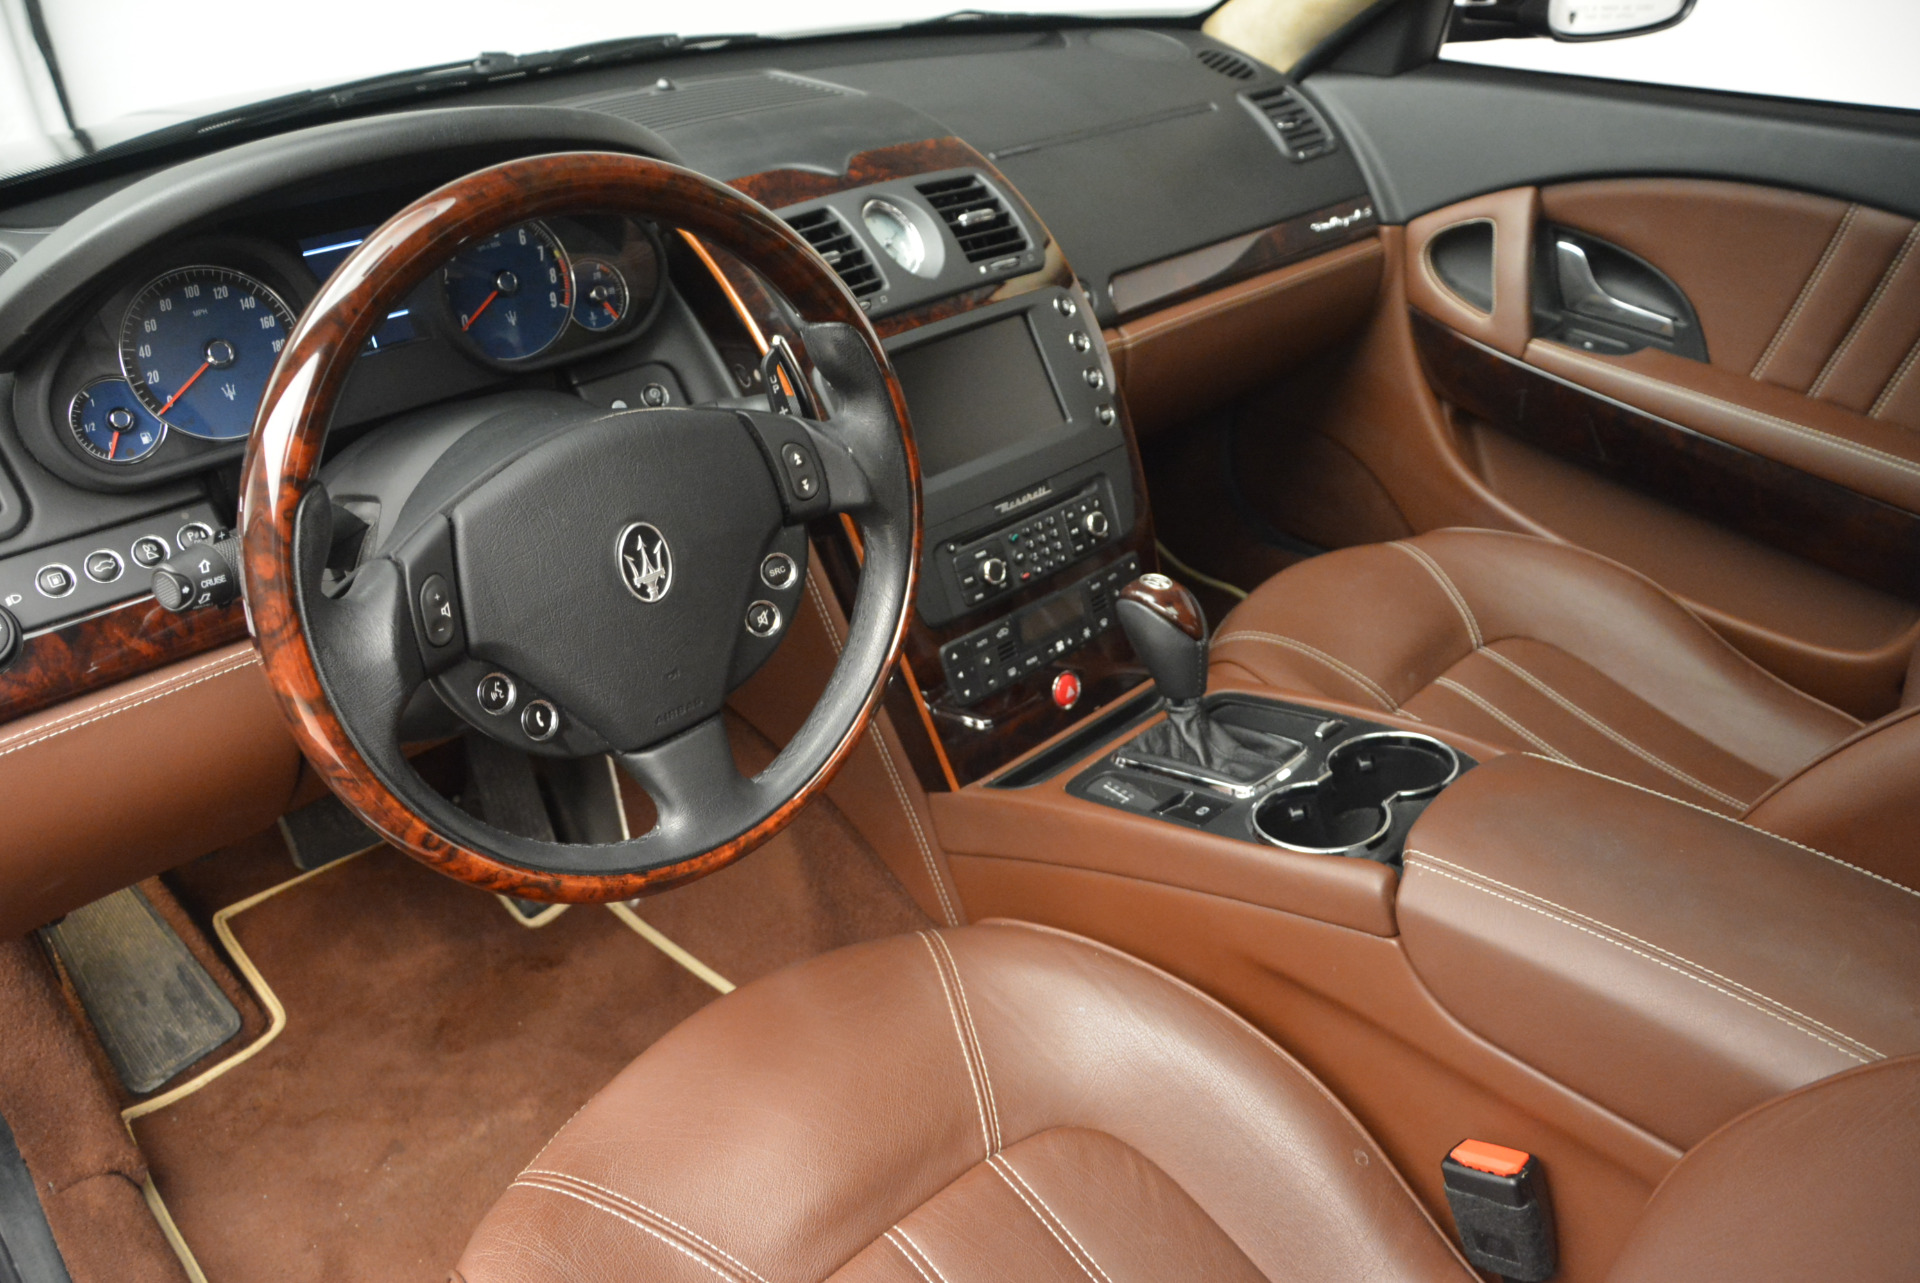 Used 2013 Maserati Quattroporte S For Sale In Westport, CT 1012_p15